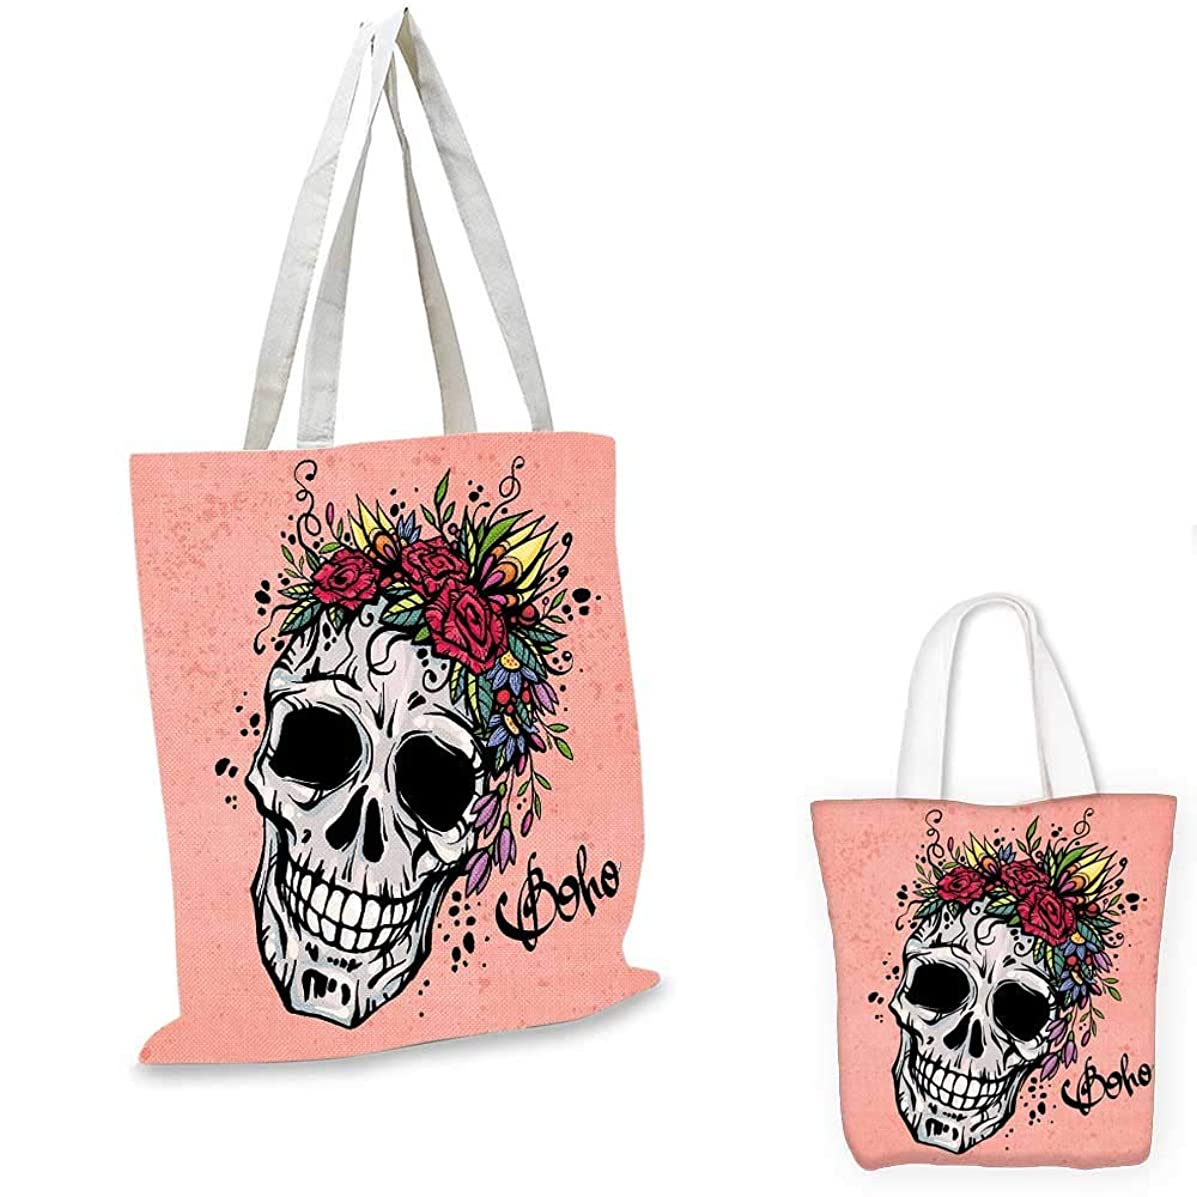 Rose ultralight shopping bag Day of the Dead Inspired Design of a Skull with Festive Floral Wreath Boho Style travel shopping bag Coral Multicolor. 13